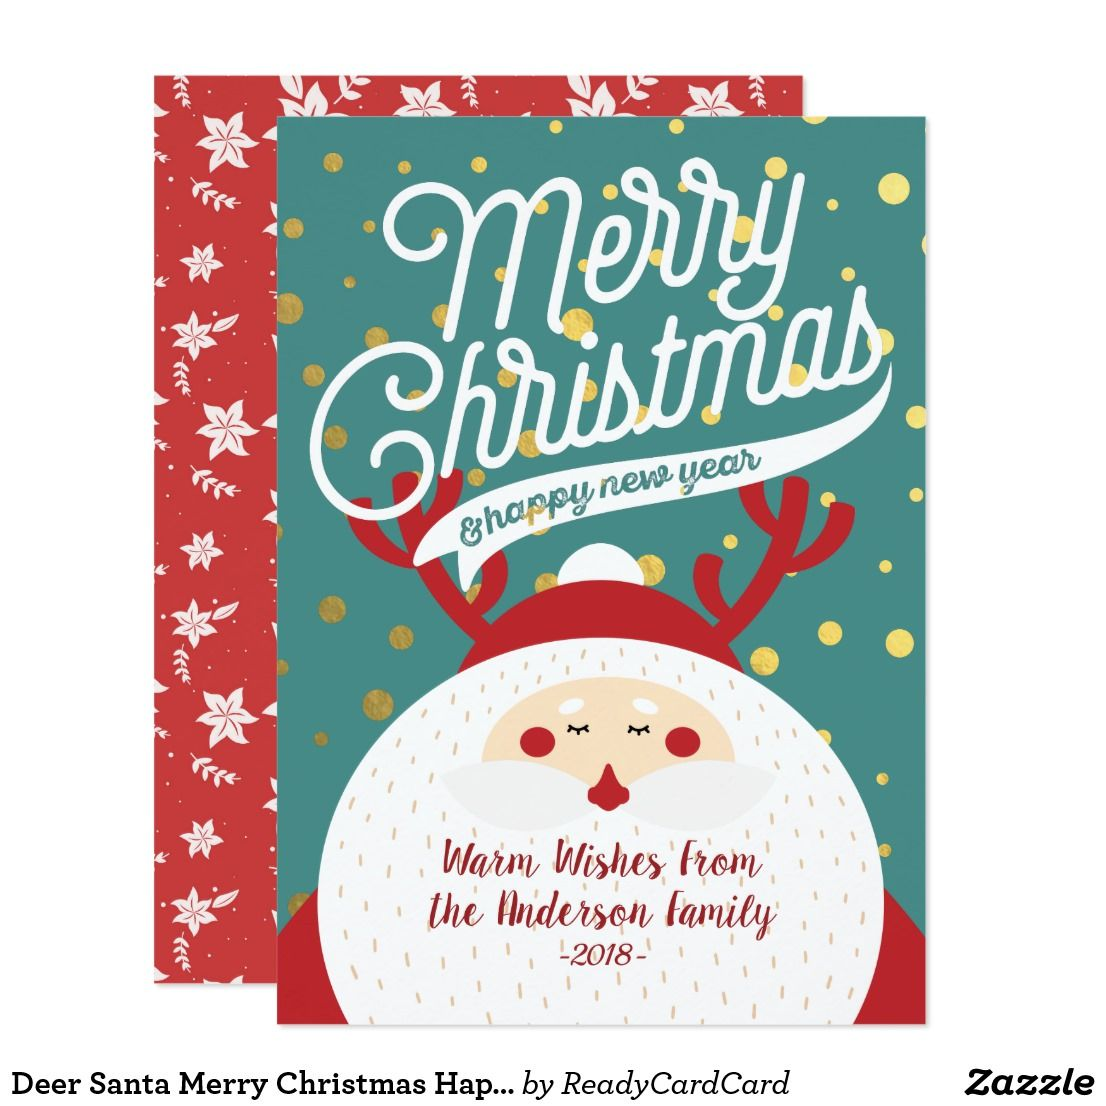 Deer Santa Merry Christmas Happy New Year Greeting Card | Merry and ...